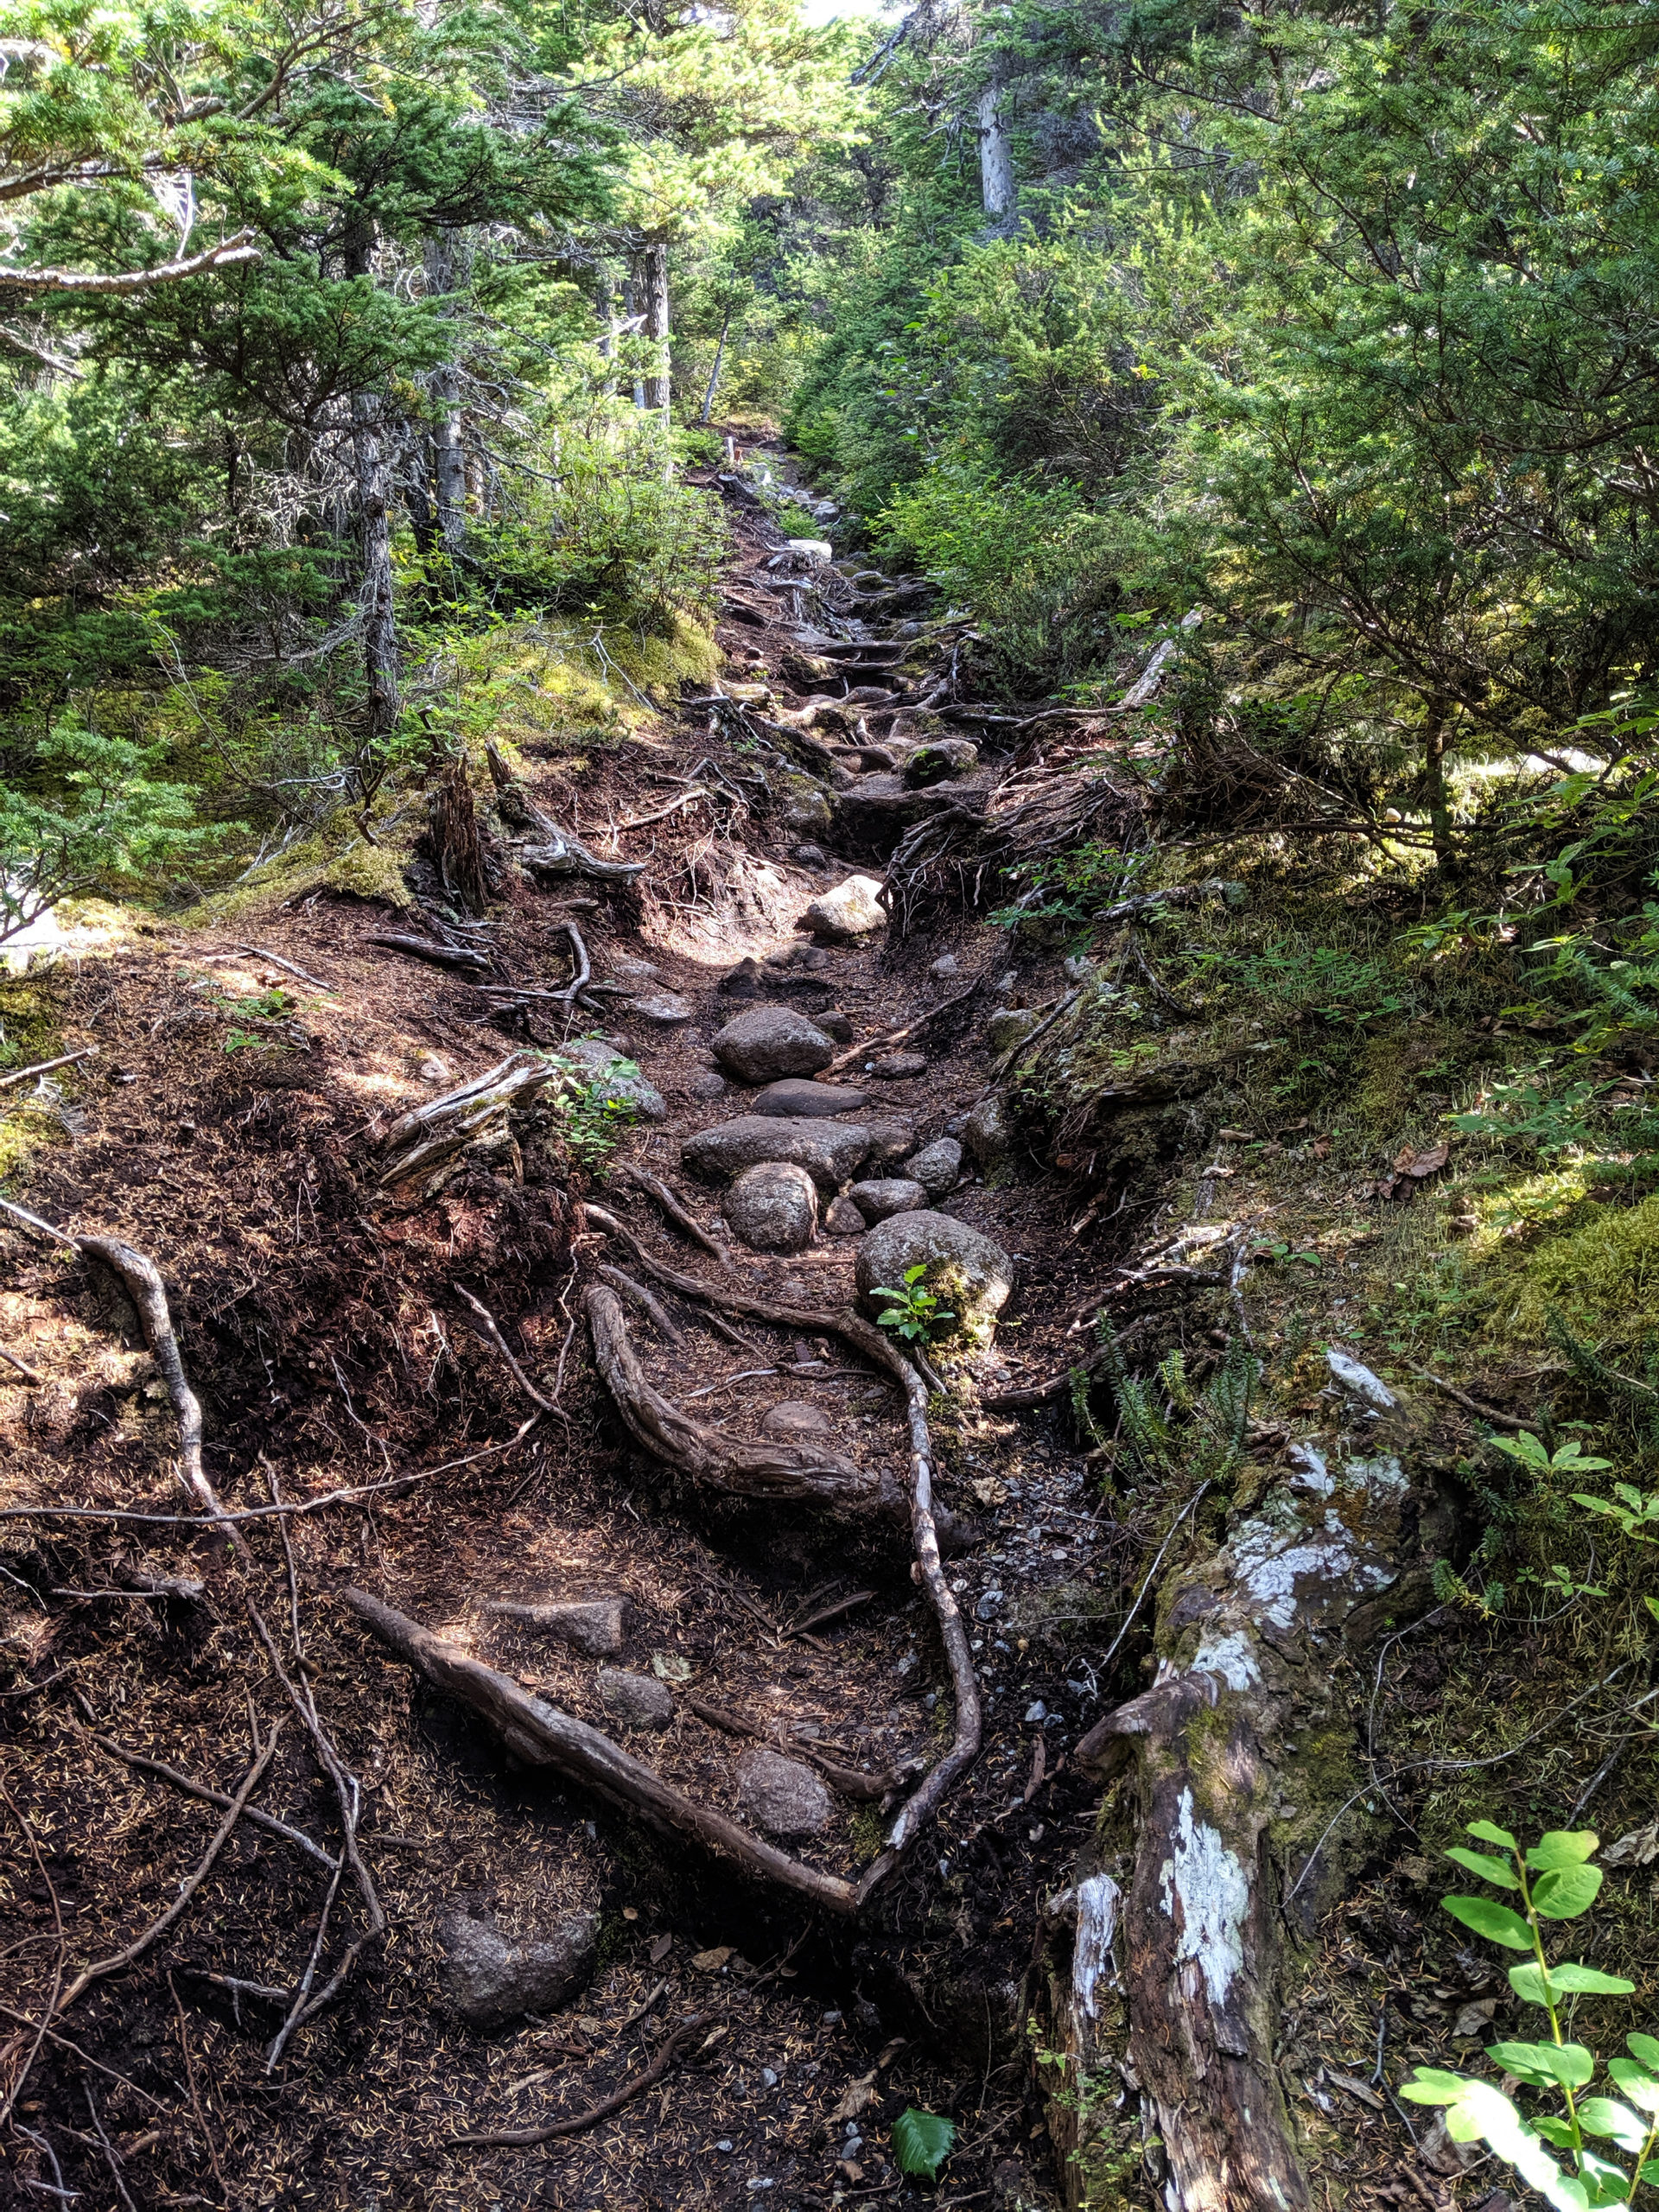 Part of the Dewey Lakes Trail System in Skagway, Alaska, pictured on Aug. 18, 2019. (Steve Silva)